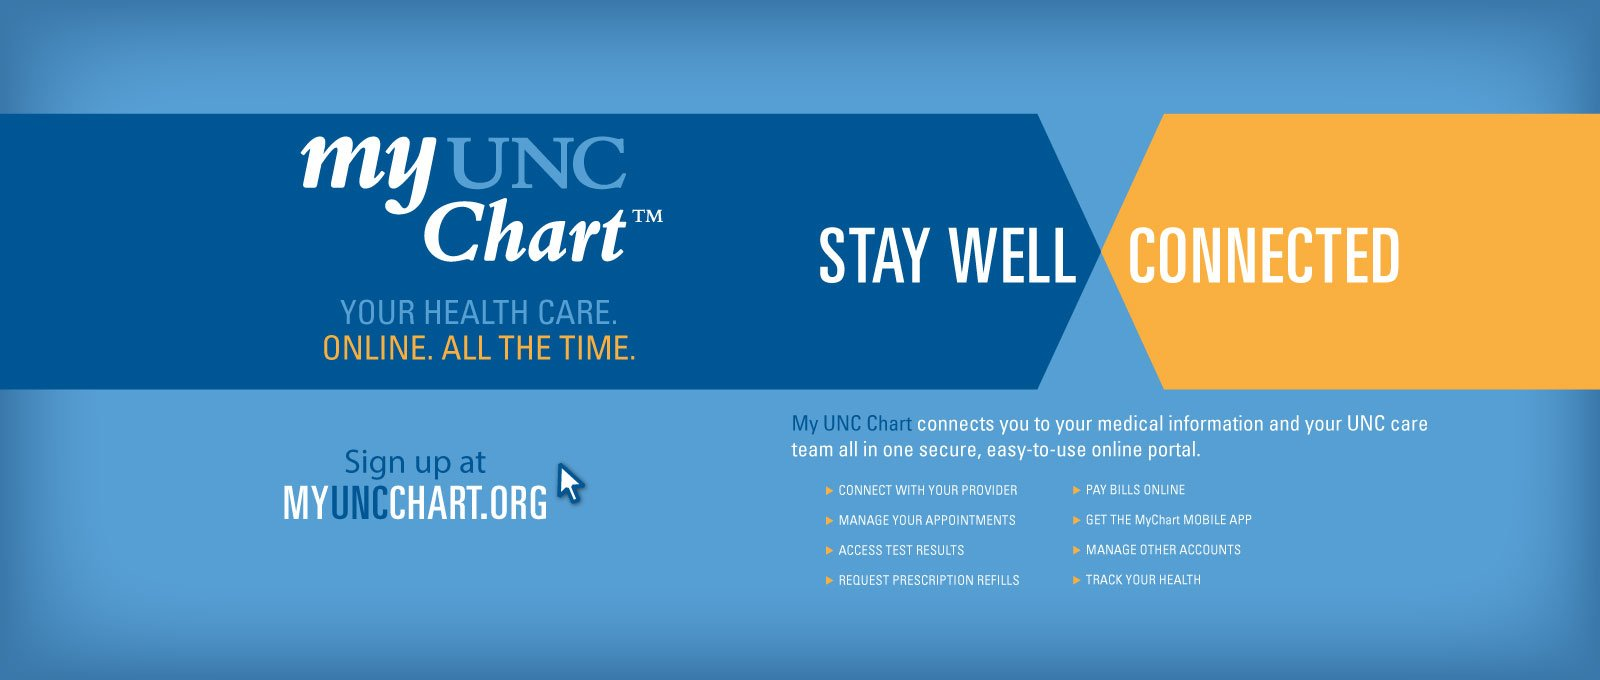 My UNC Chart. Your Health Care. Online. All the time.